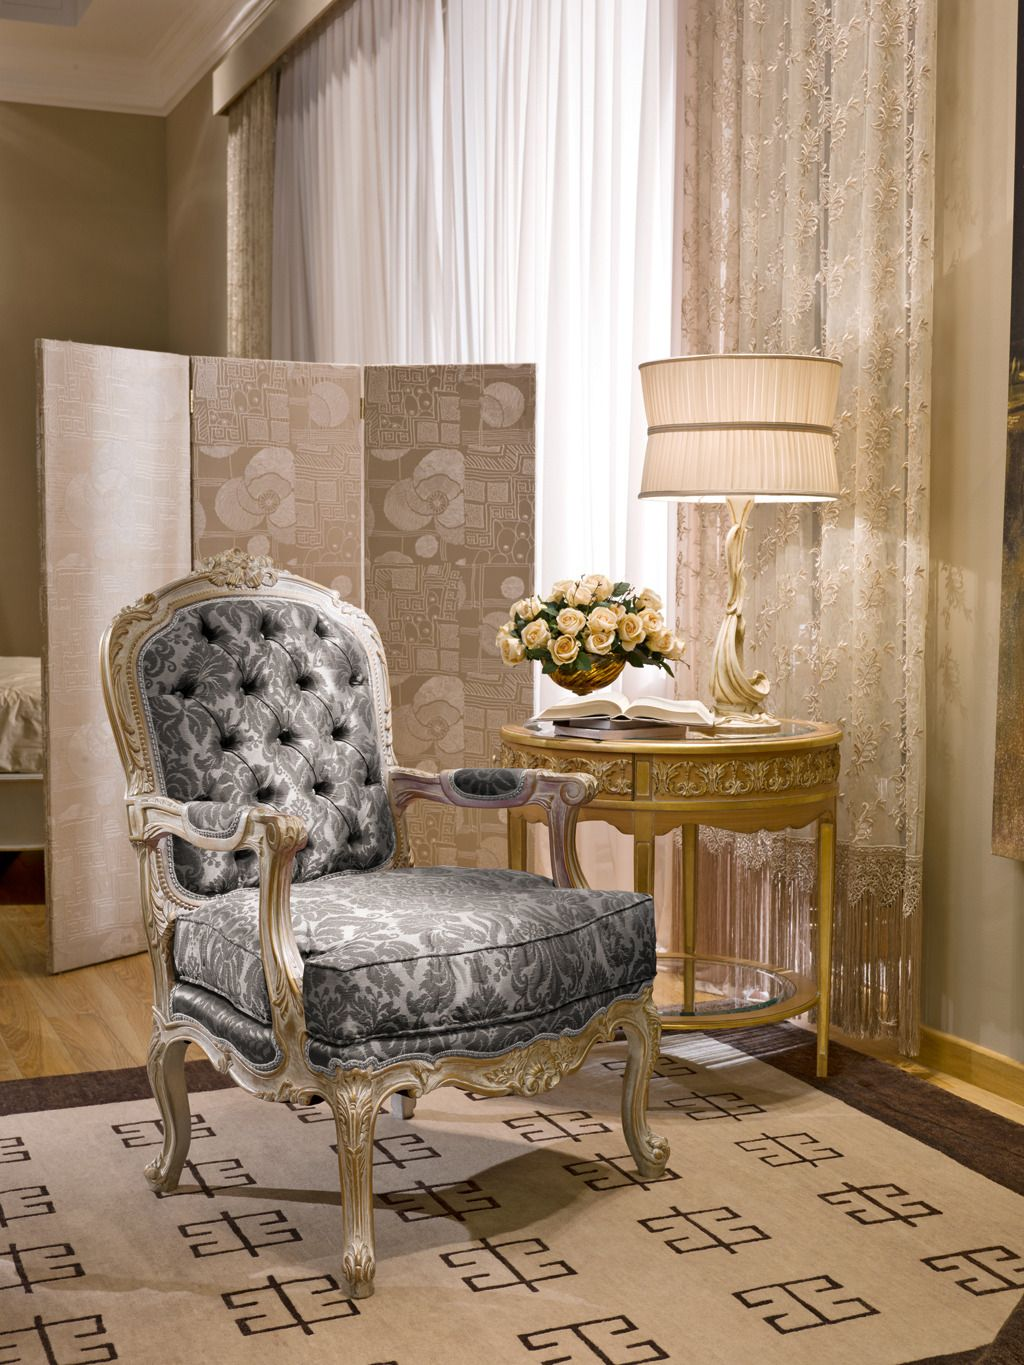 Medea S R L From Italy Feminine Finery In 2020 Luxury Furniture Design Luxury Furniture Furniture Design